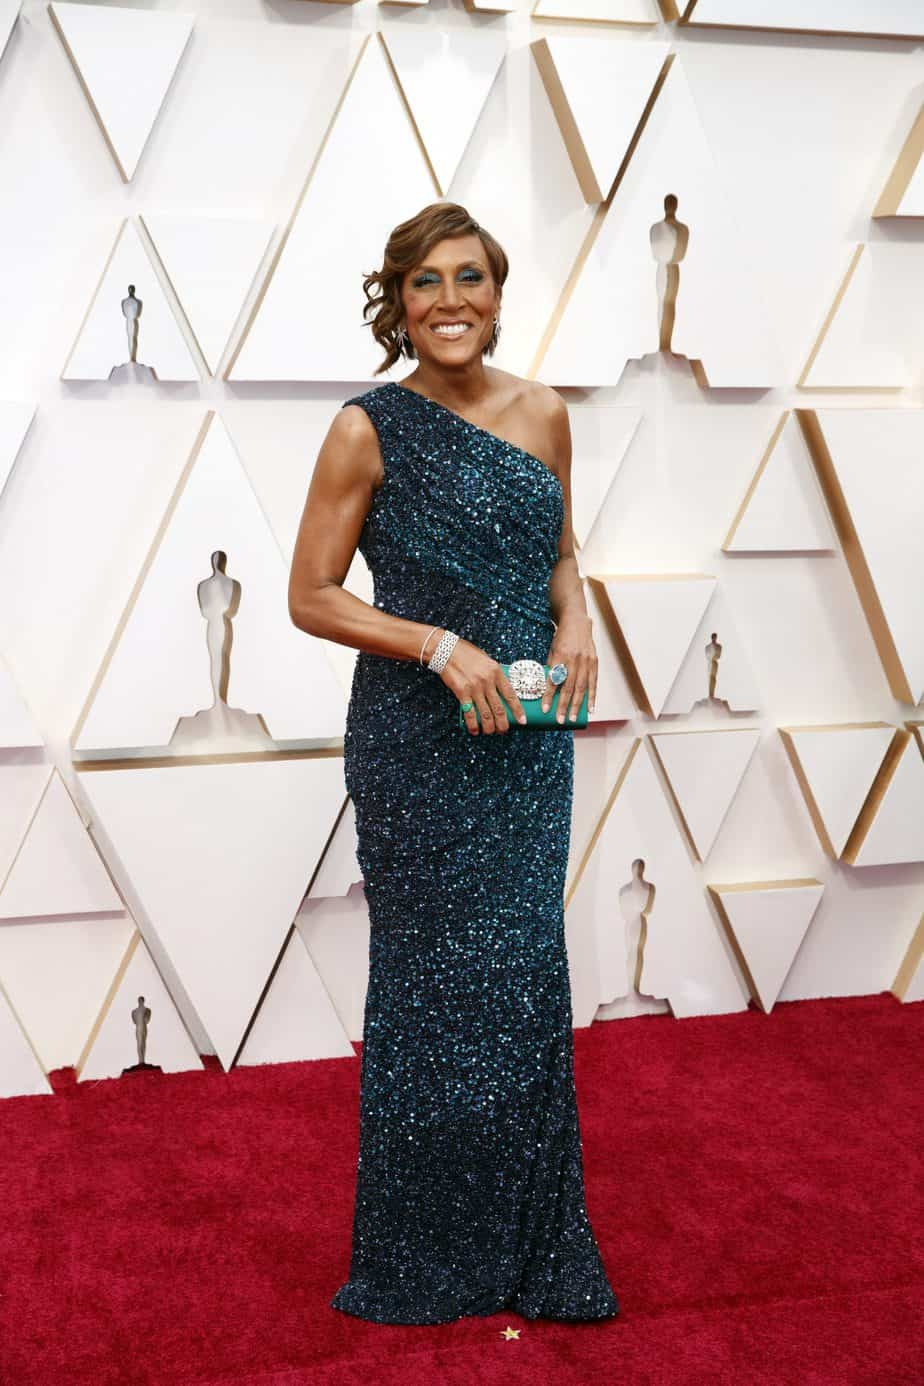 Robin Roberts The 92nd Oscars at the Dolby Theatre